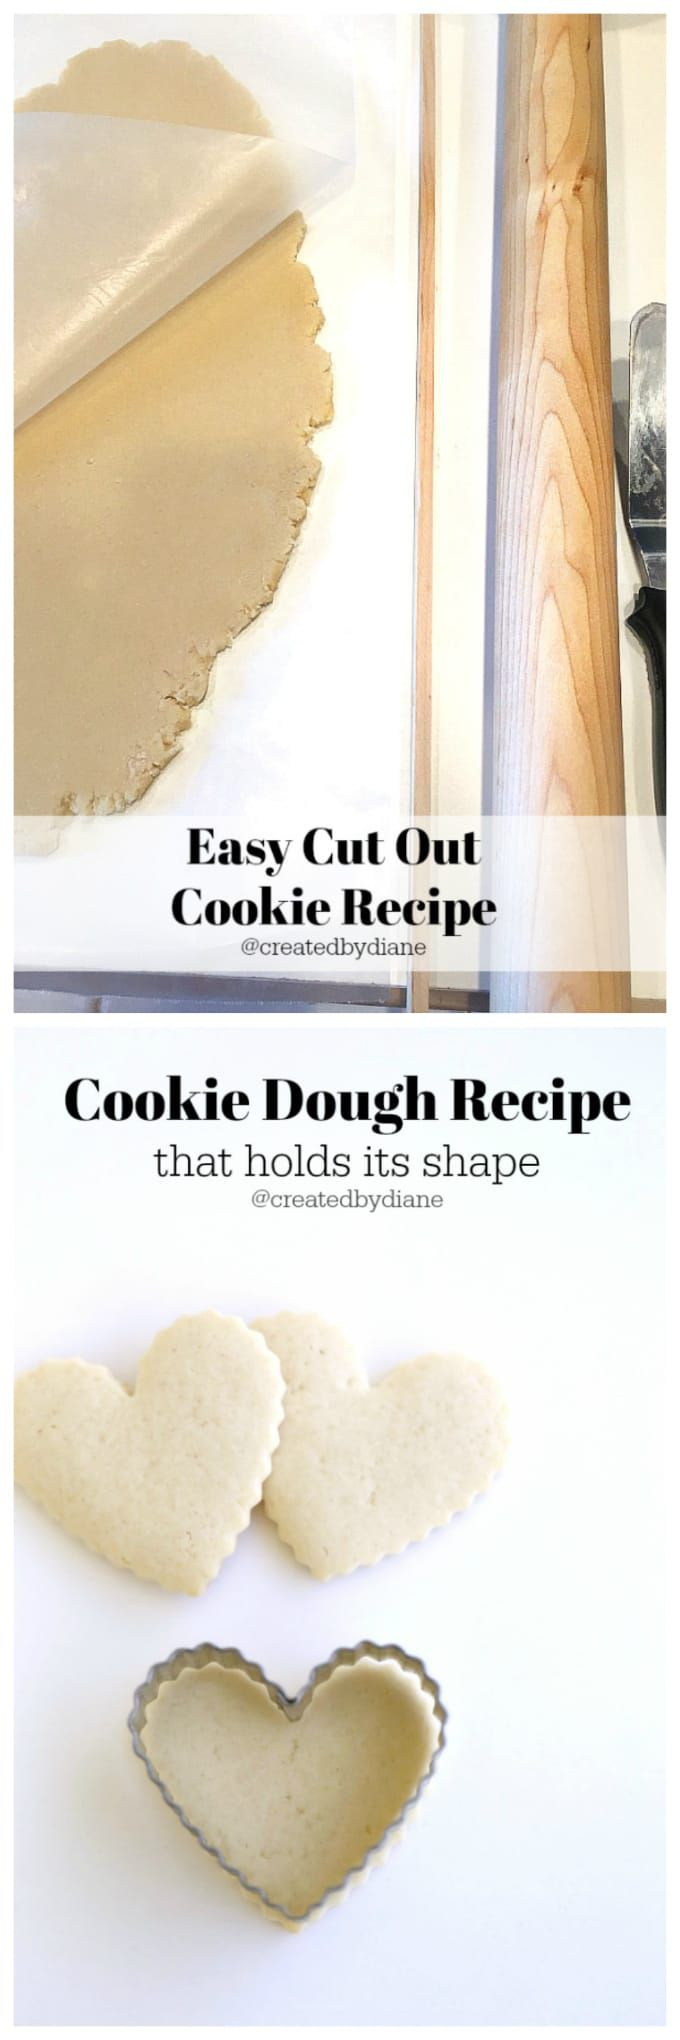 Delicious and easy sugar cookie recipe perfect for all occasions and holidays including Christmas Cookie Baking! @createdbydiane